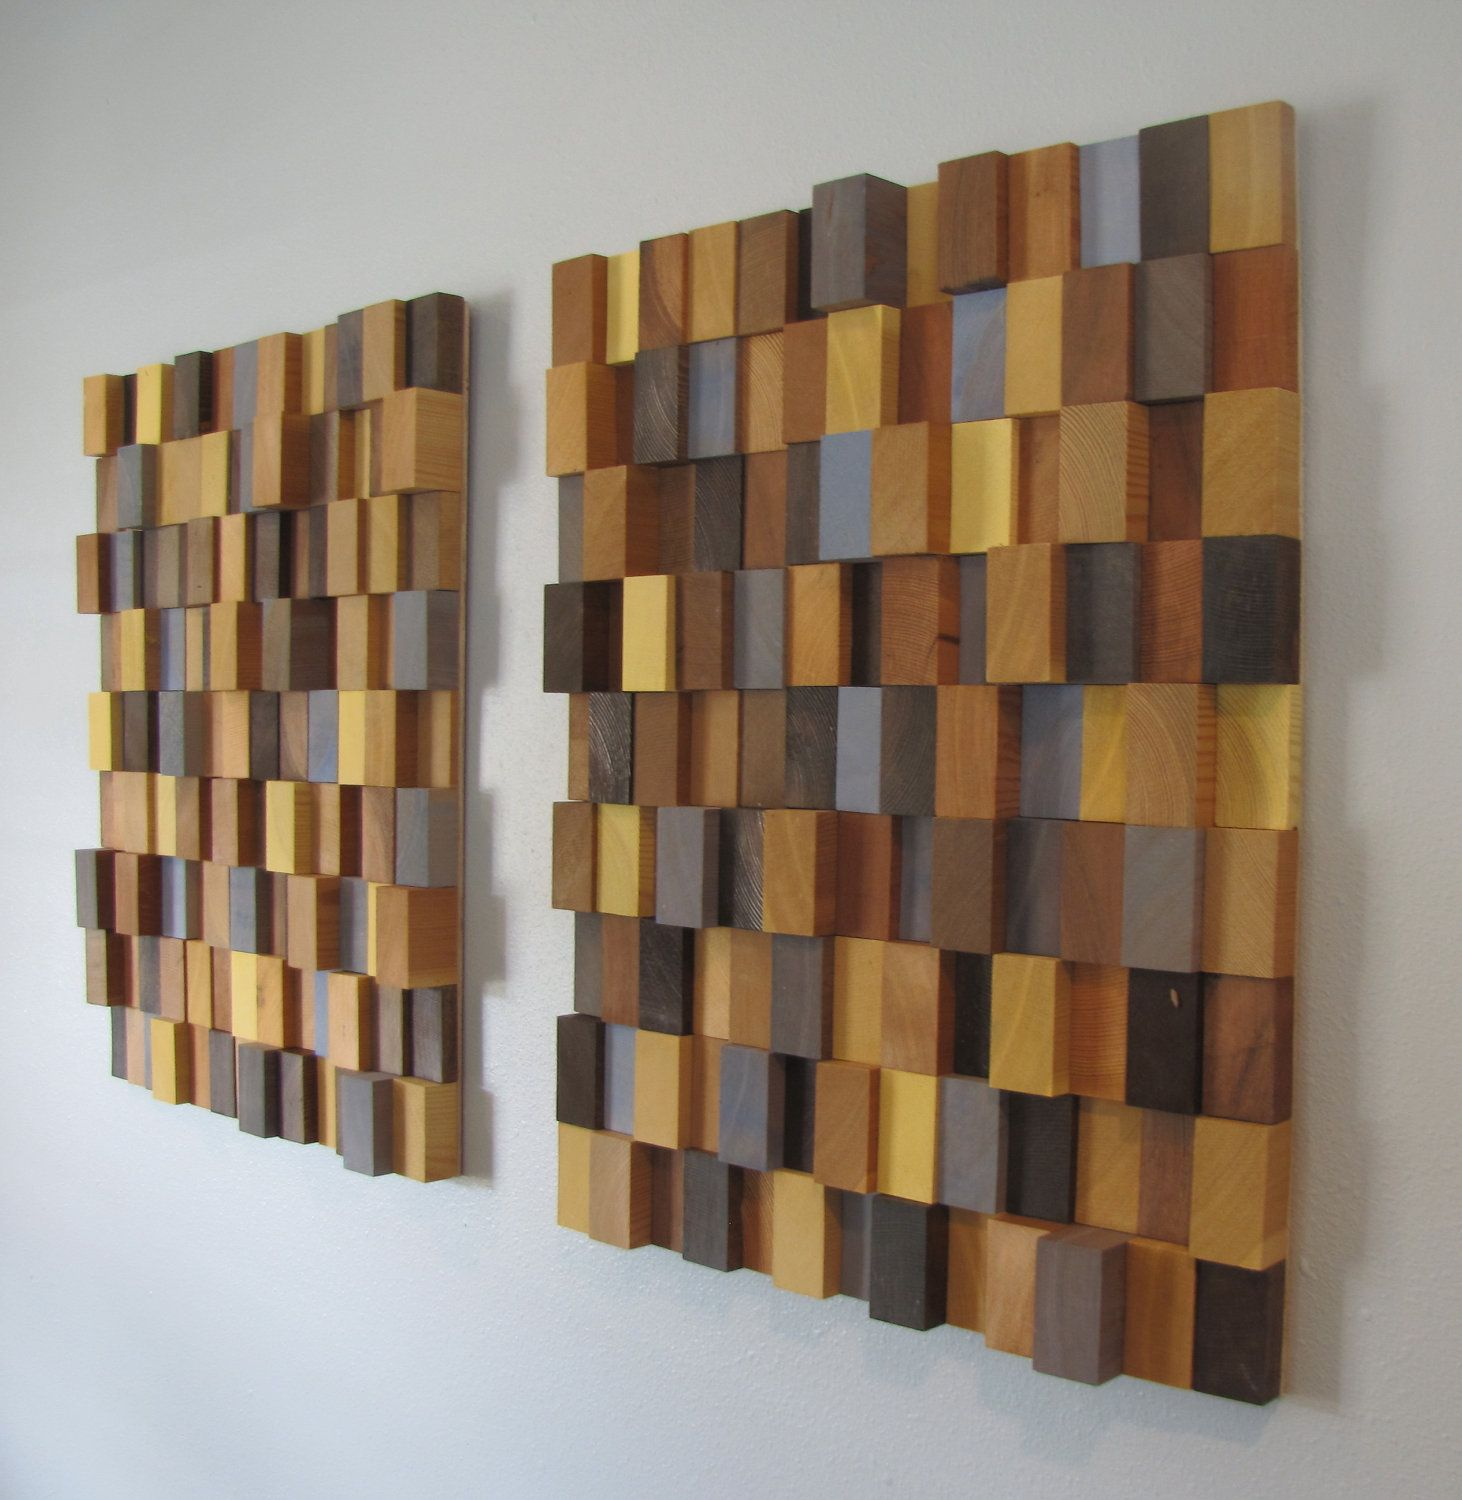 Wood Block Wall Wall Art Make Thinner Sections To Fit Each Stair With Colors To